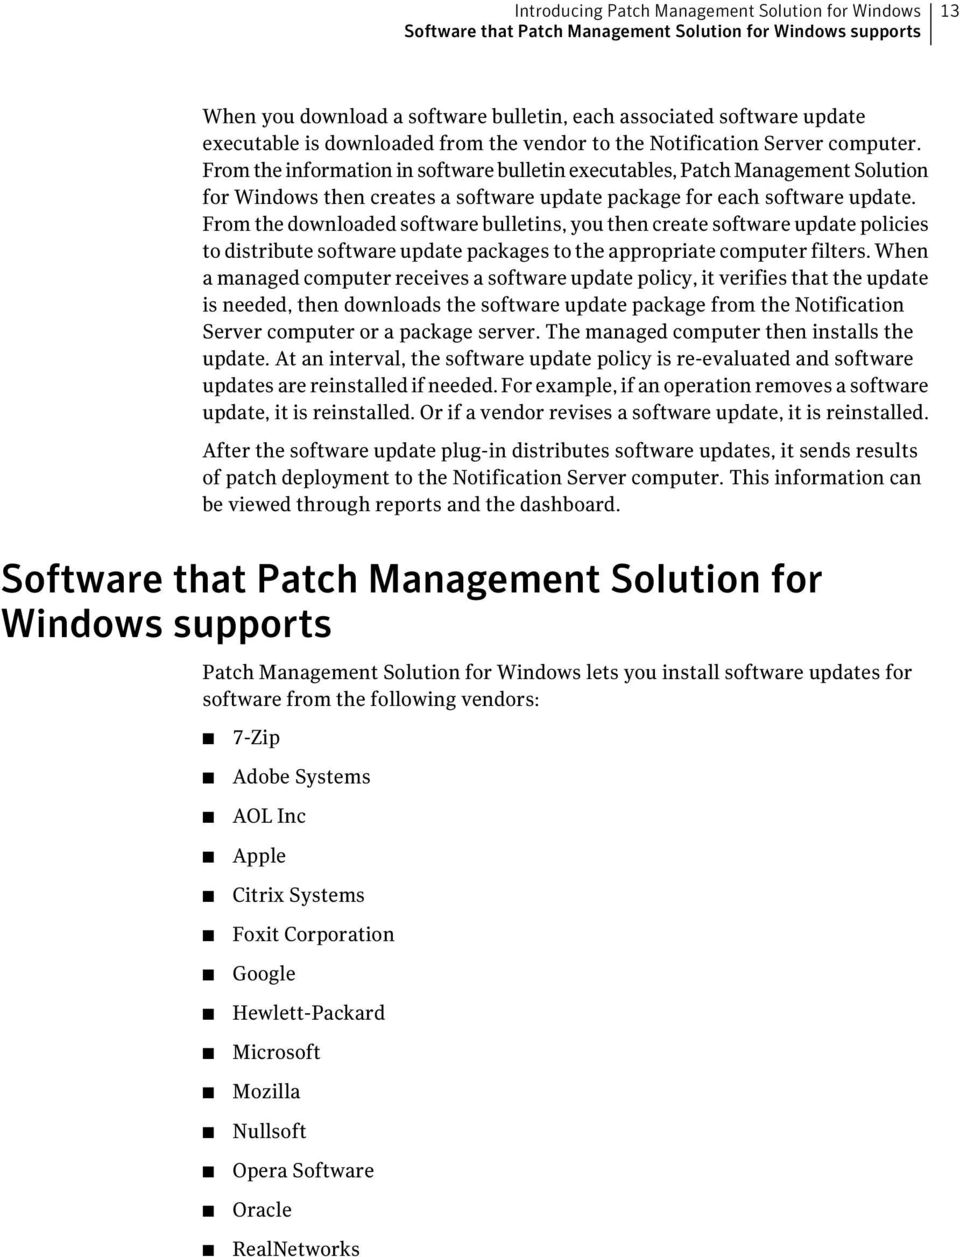 From the information in software bulletin executables, Patch Management Solution for Windows then creates a software update package for each software update.